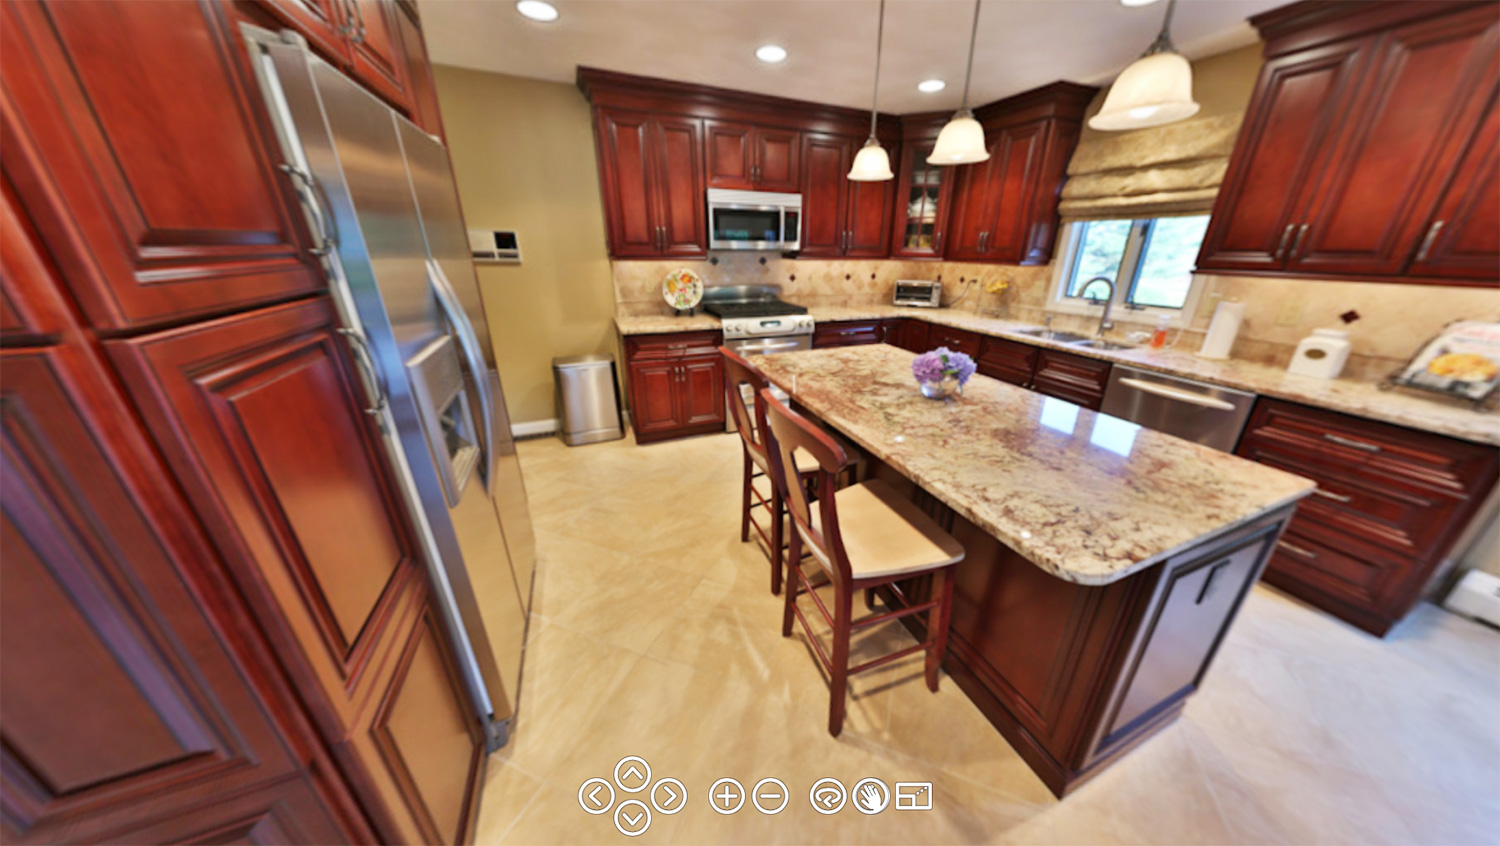 Kitchen cabinets eastern ct - Take A 360 Virtual Tour Of This Beautiful Rhode Island Kitchen Renovation In Lincoln Ri Or Rhode Island Bathroom Renovation In Narragansett Ri